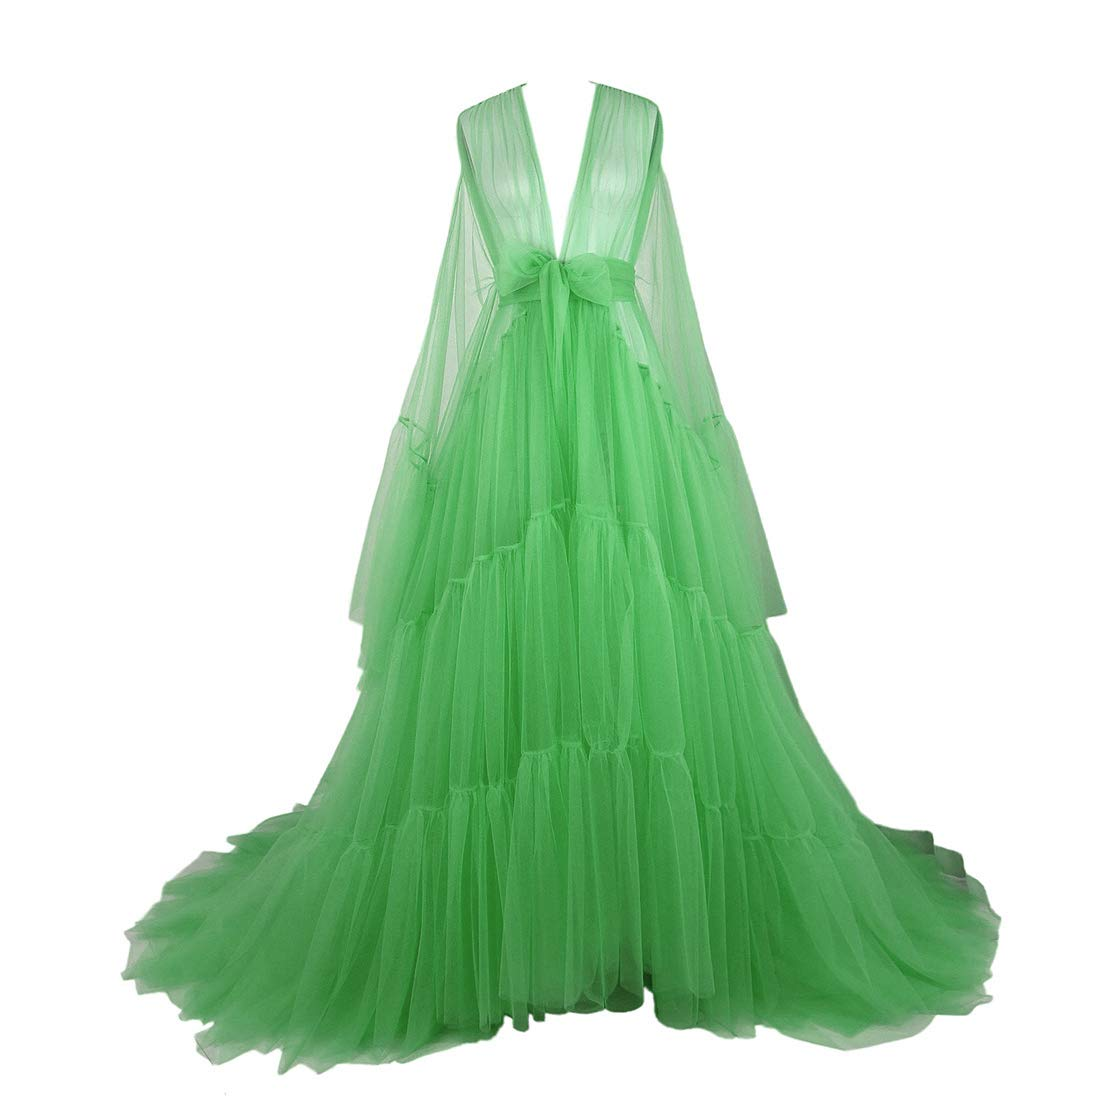 Tulle Dressing Gown Hollywood Robe Performance Chic Outfit Drag Queen Photography Dress